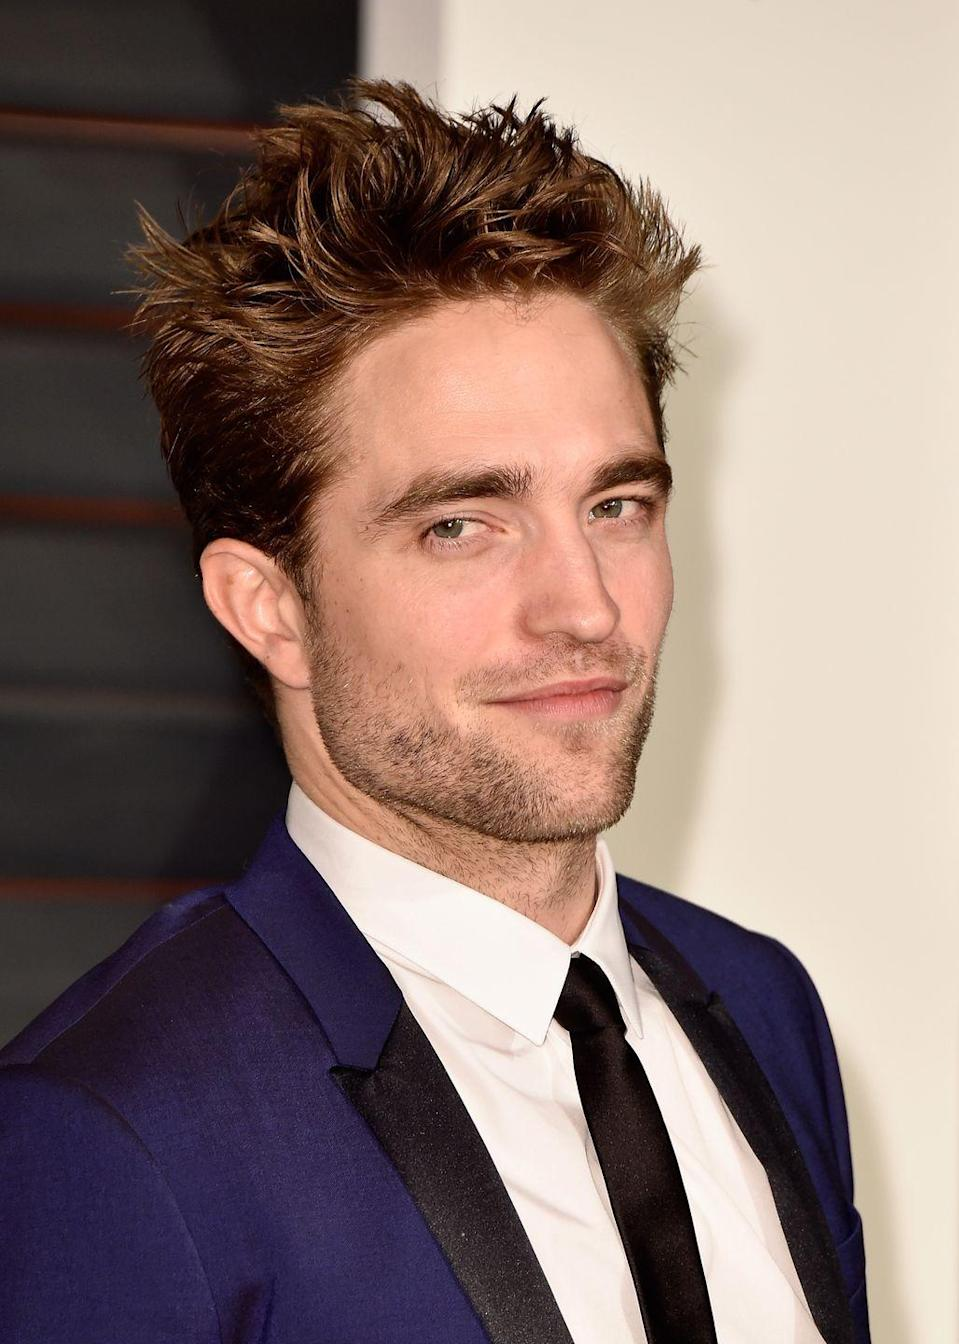 """<p>Robert Pattinson hates <em>Twilight</em>, hates Edward, and hates how everyone likes both. (P.S. There's even <span>a Tumblr devoted</span> to his interviews where he has to talk about <em>Twilight</em>, and ultimately makes fun of it.) Perhaps the best quote: """"He's the most ridiculous person...the more I read the script, the more I hated this guy...Plus, he's a 108 year-old virgin so he's obviously got some issues there.""""</p>"""